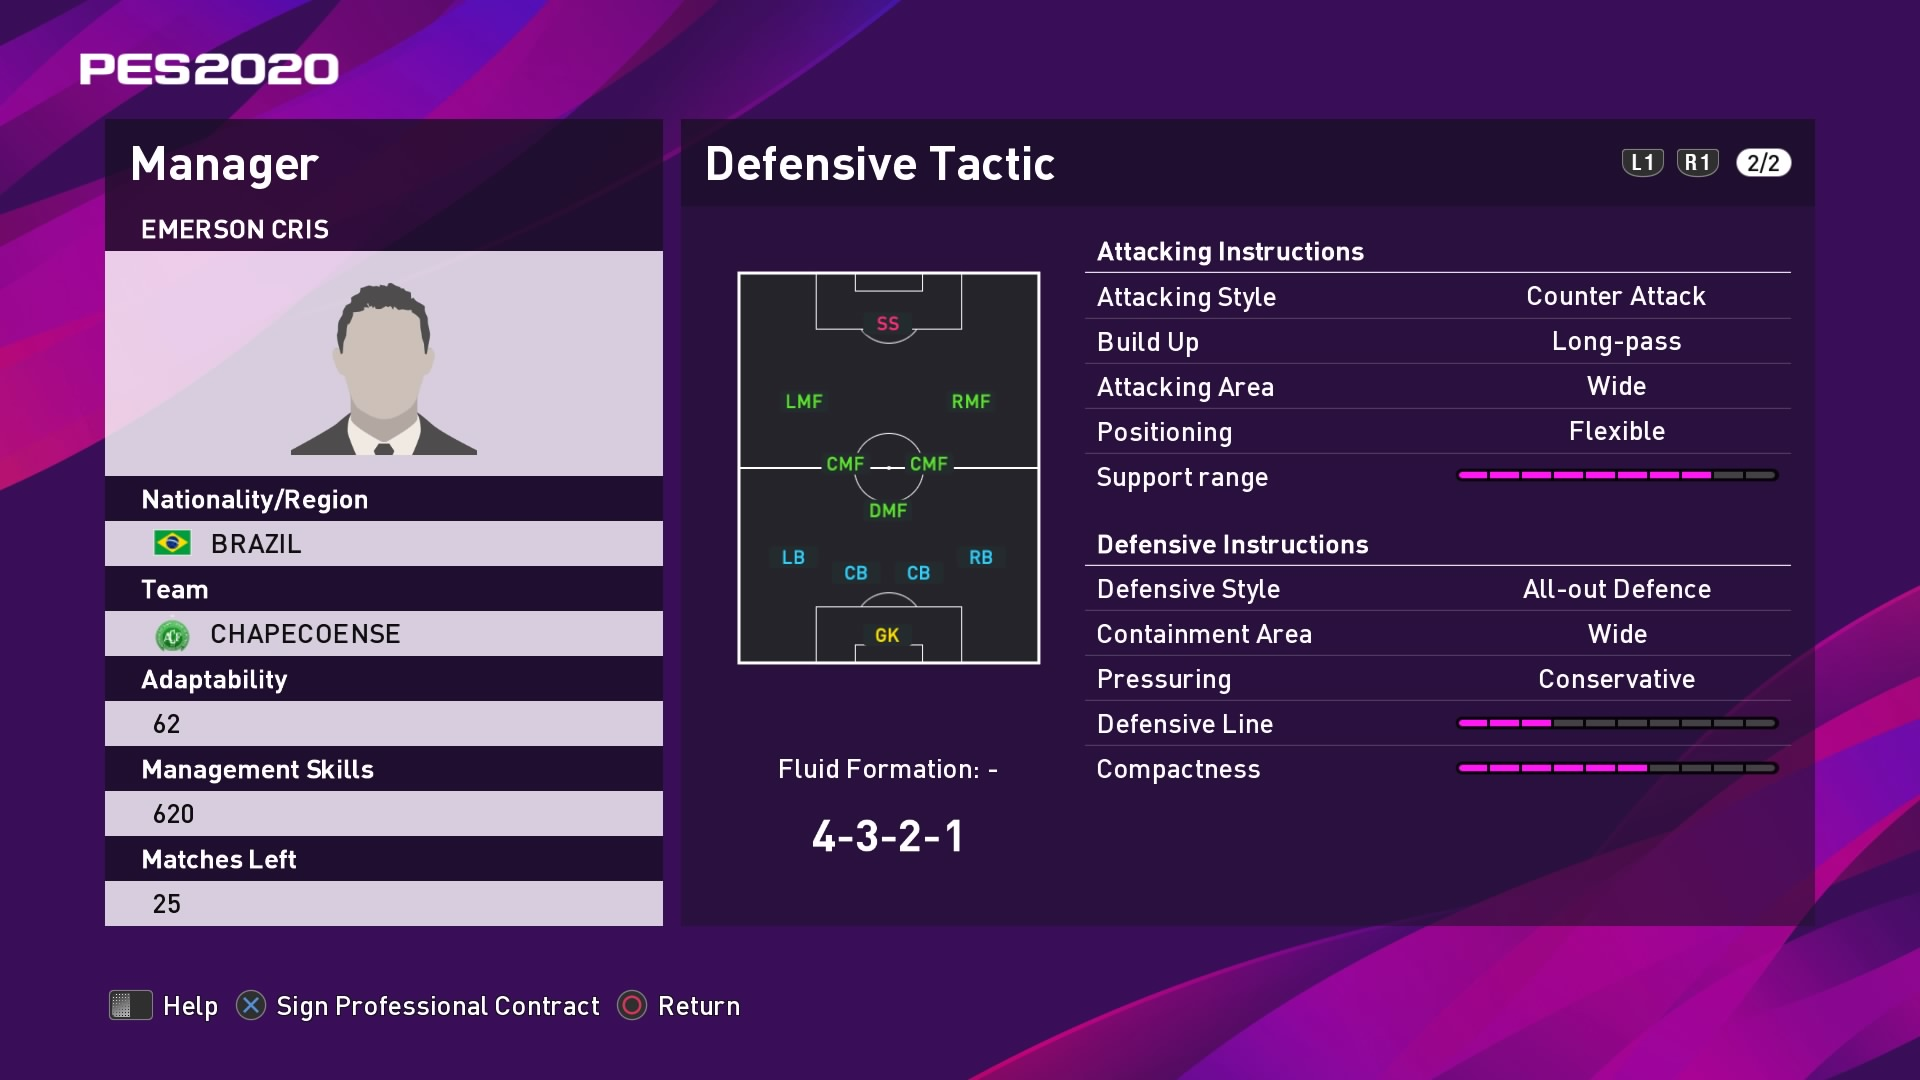 Emerson Cris Defensive Tactic in PES 2020 myClub